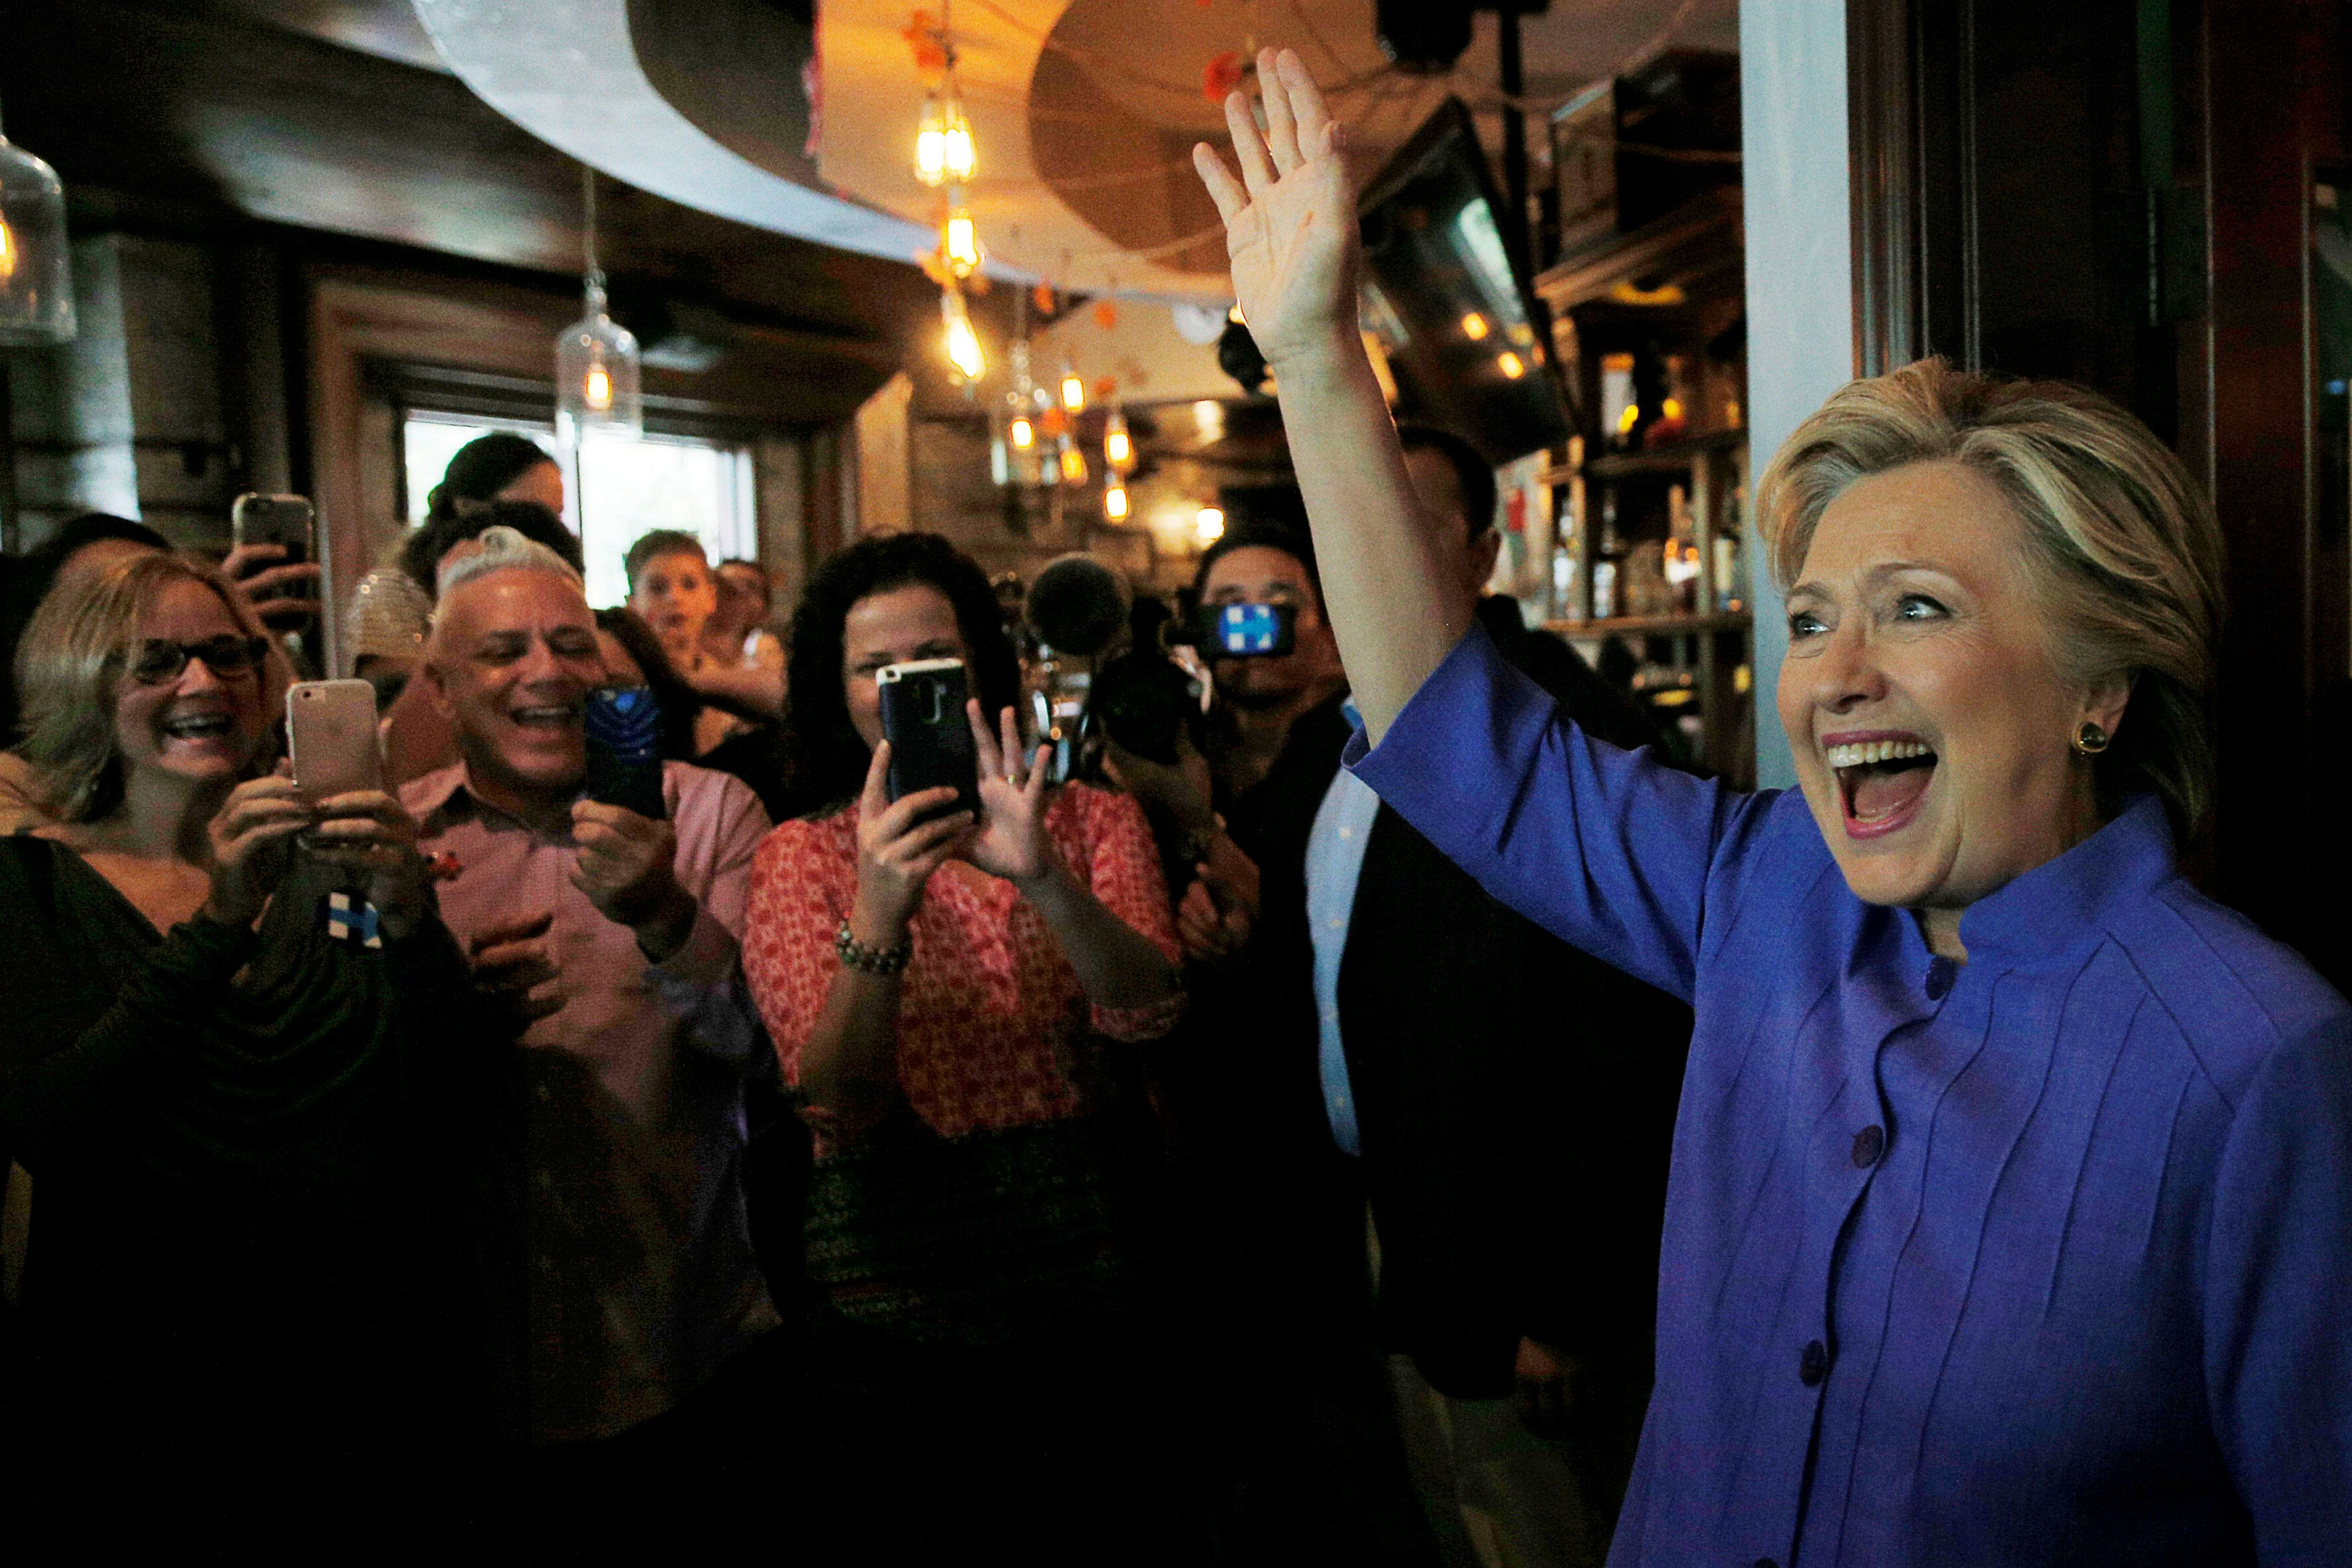 U.S. Democratic presidential nominee Hillary Clinton greets voters at an early voting brunch at Fado's Irish Pub in Miami, Florida, U.S. October 30, 2016.  REUTERS/Brian Snyder